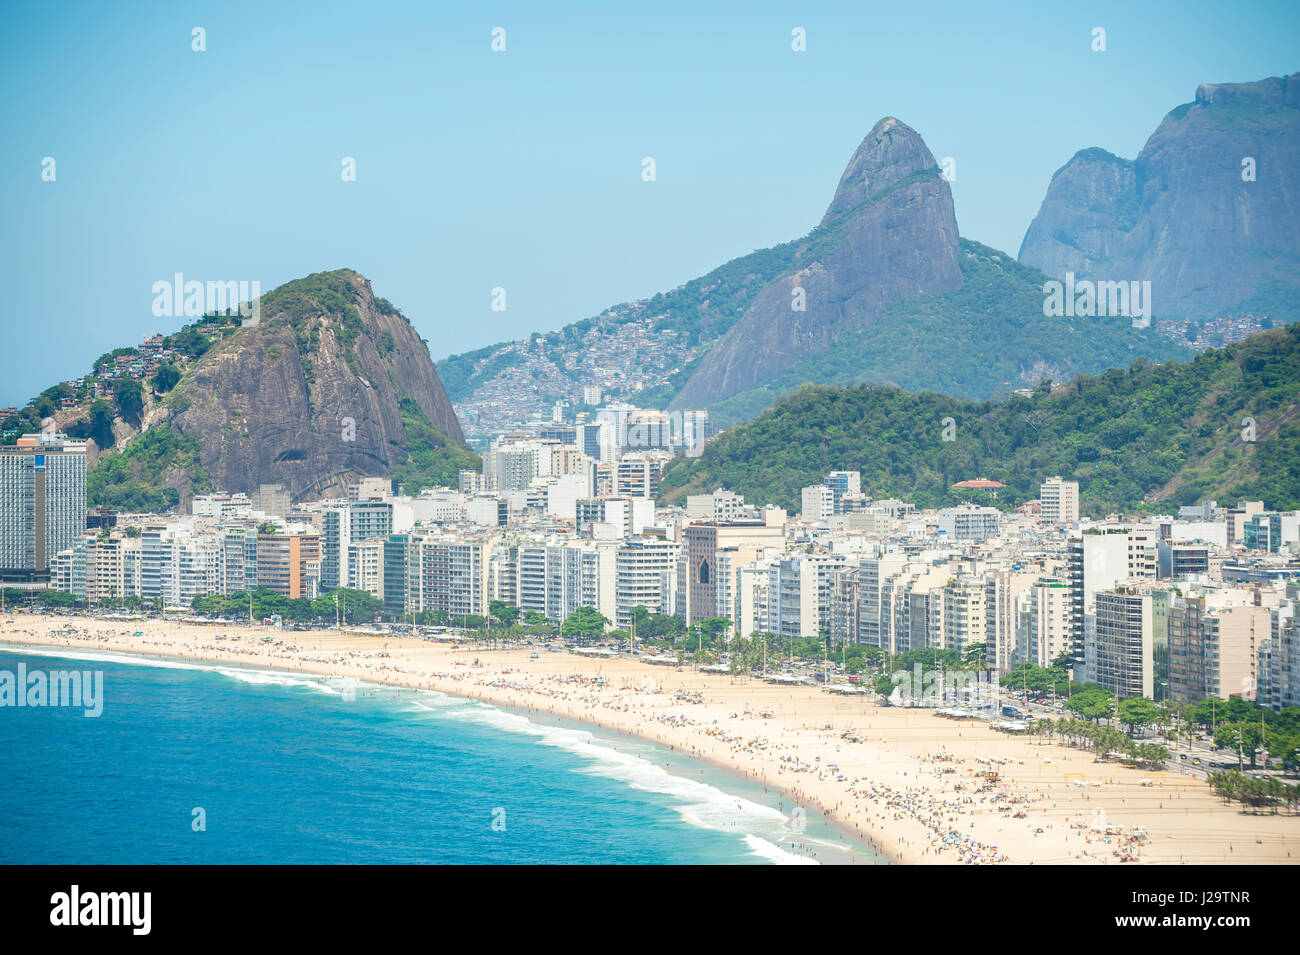 Bright scenic view of the broad crescent of Copacabana Beach with the dramatic skyline of Rio de Janeiro, Brazil - Stock Image